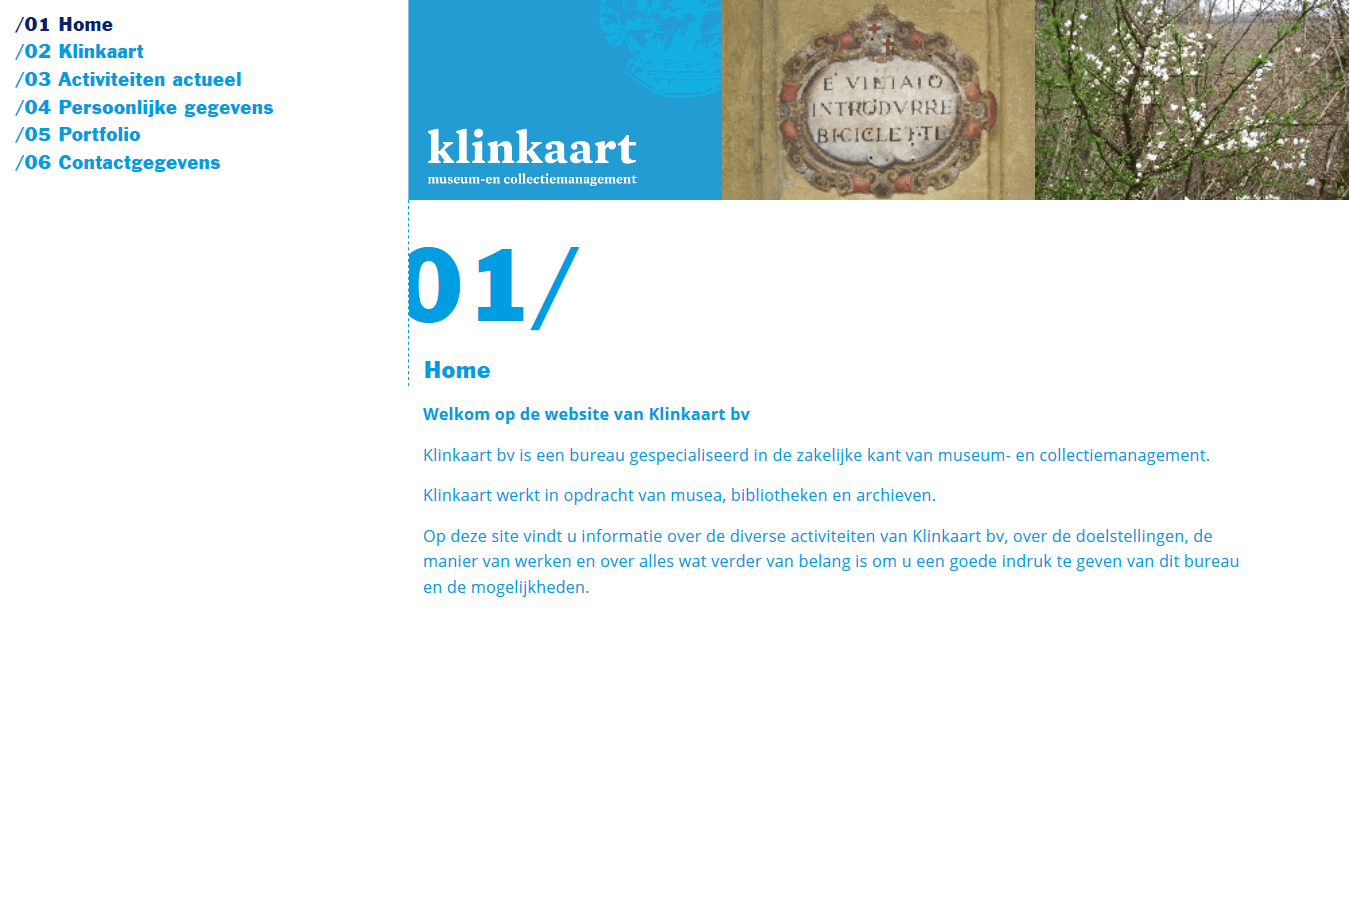 Klinkaart Collectie-en Museummanagement